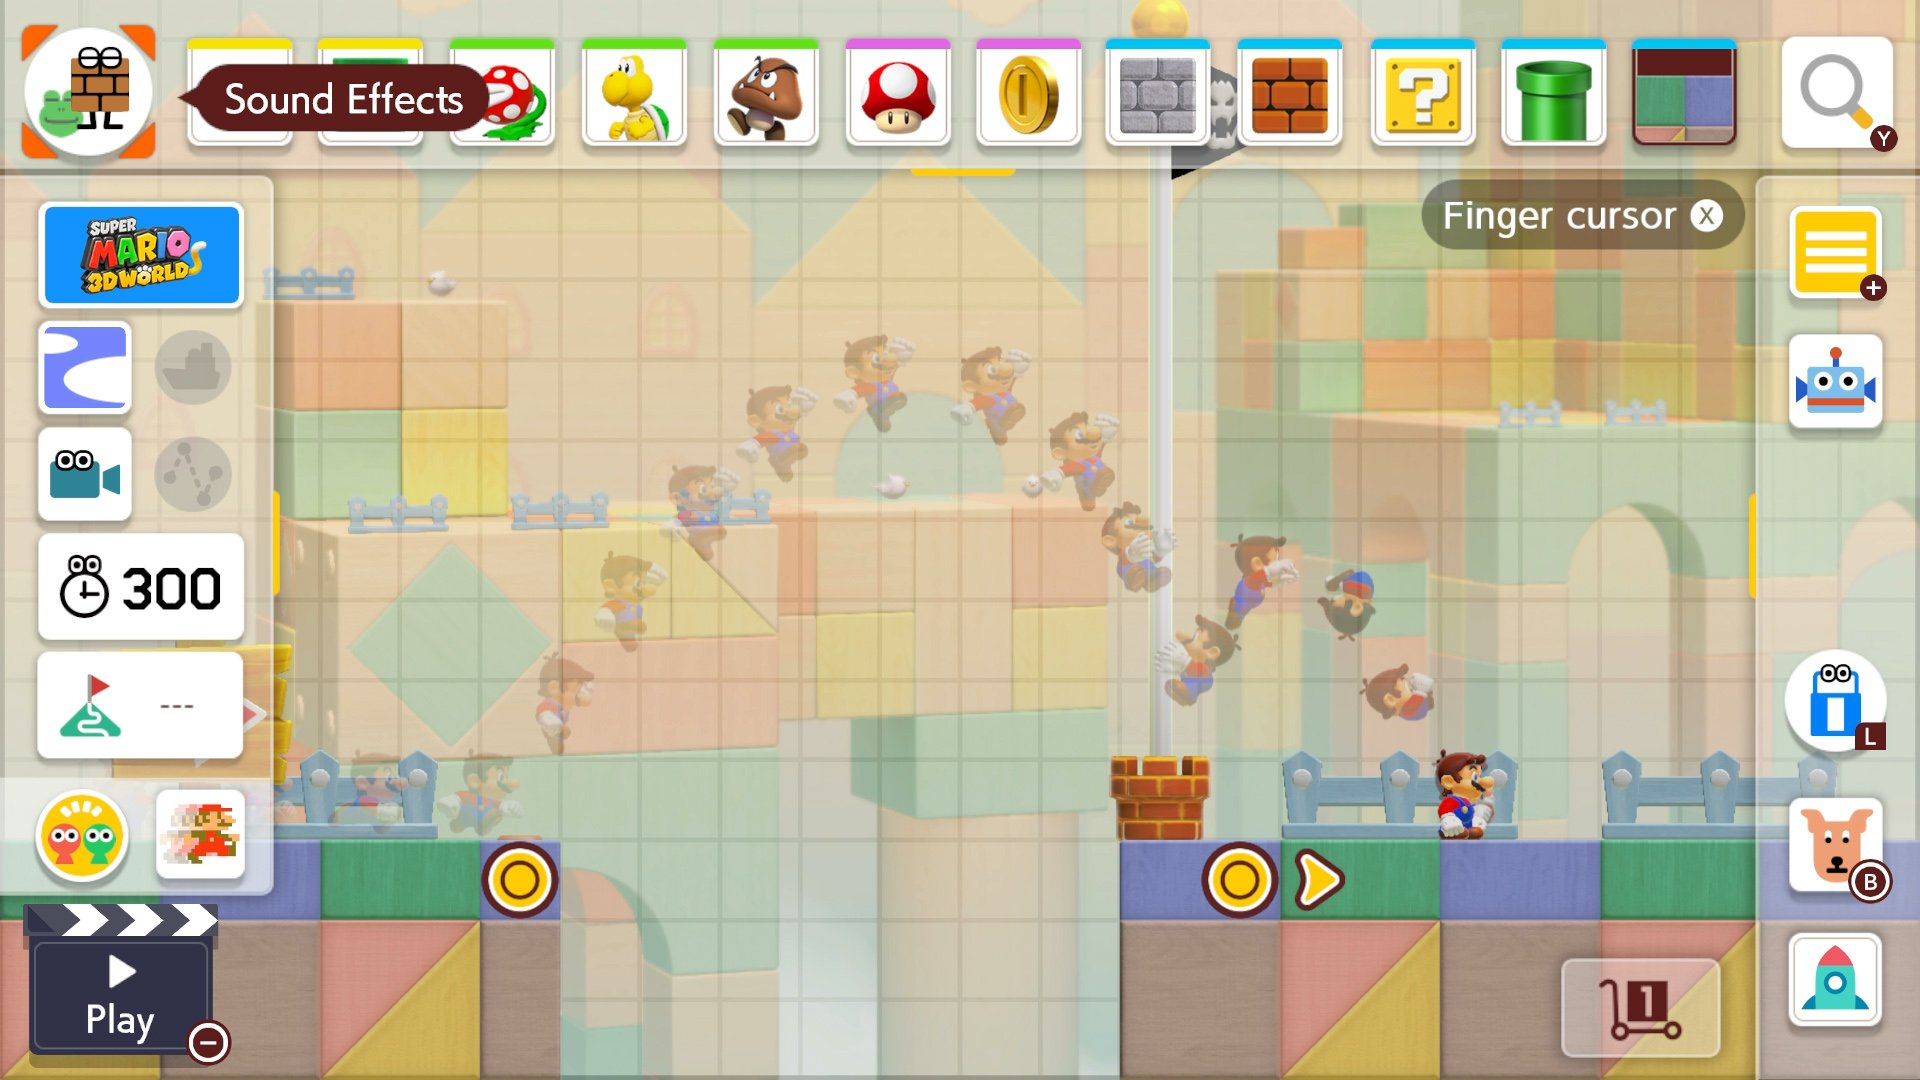 Super Mario Maker 2 sound effects and music